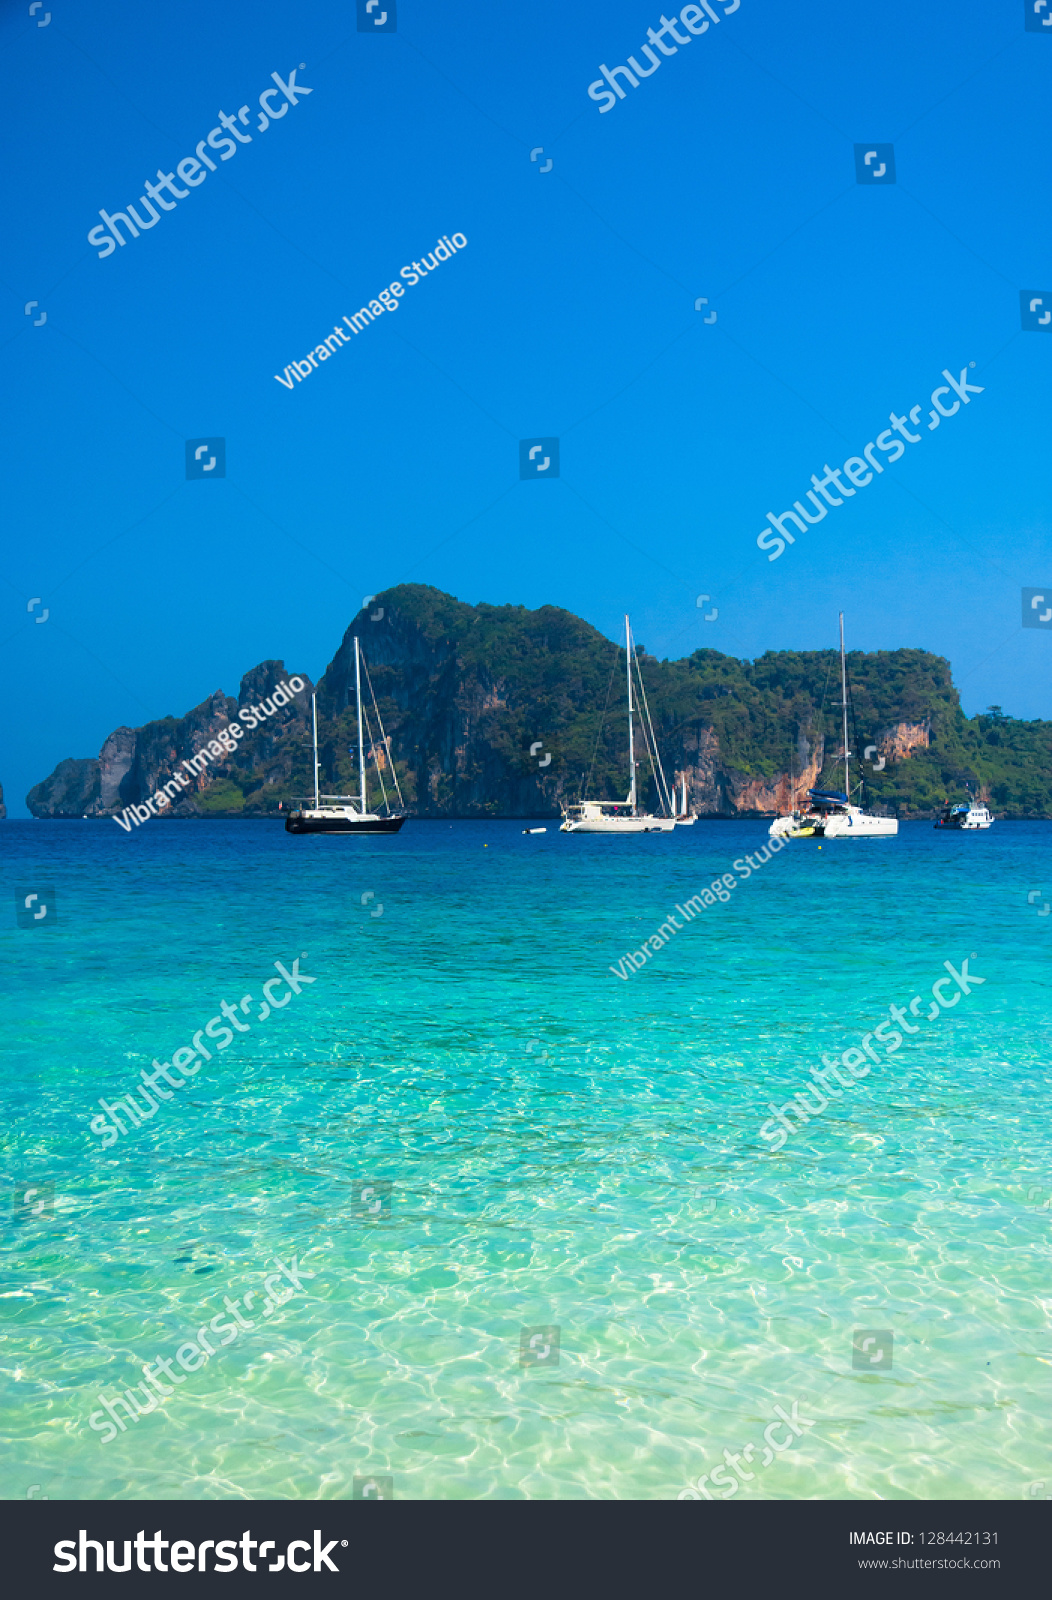 28 remote vacations remote resorts total management remote remote vacations remote resort vacation wallpaper stock photo 128442131